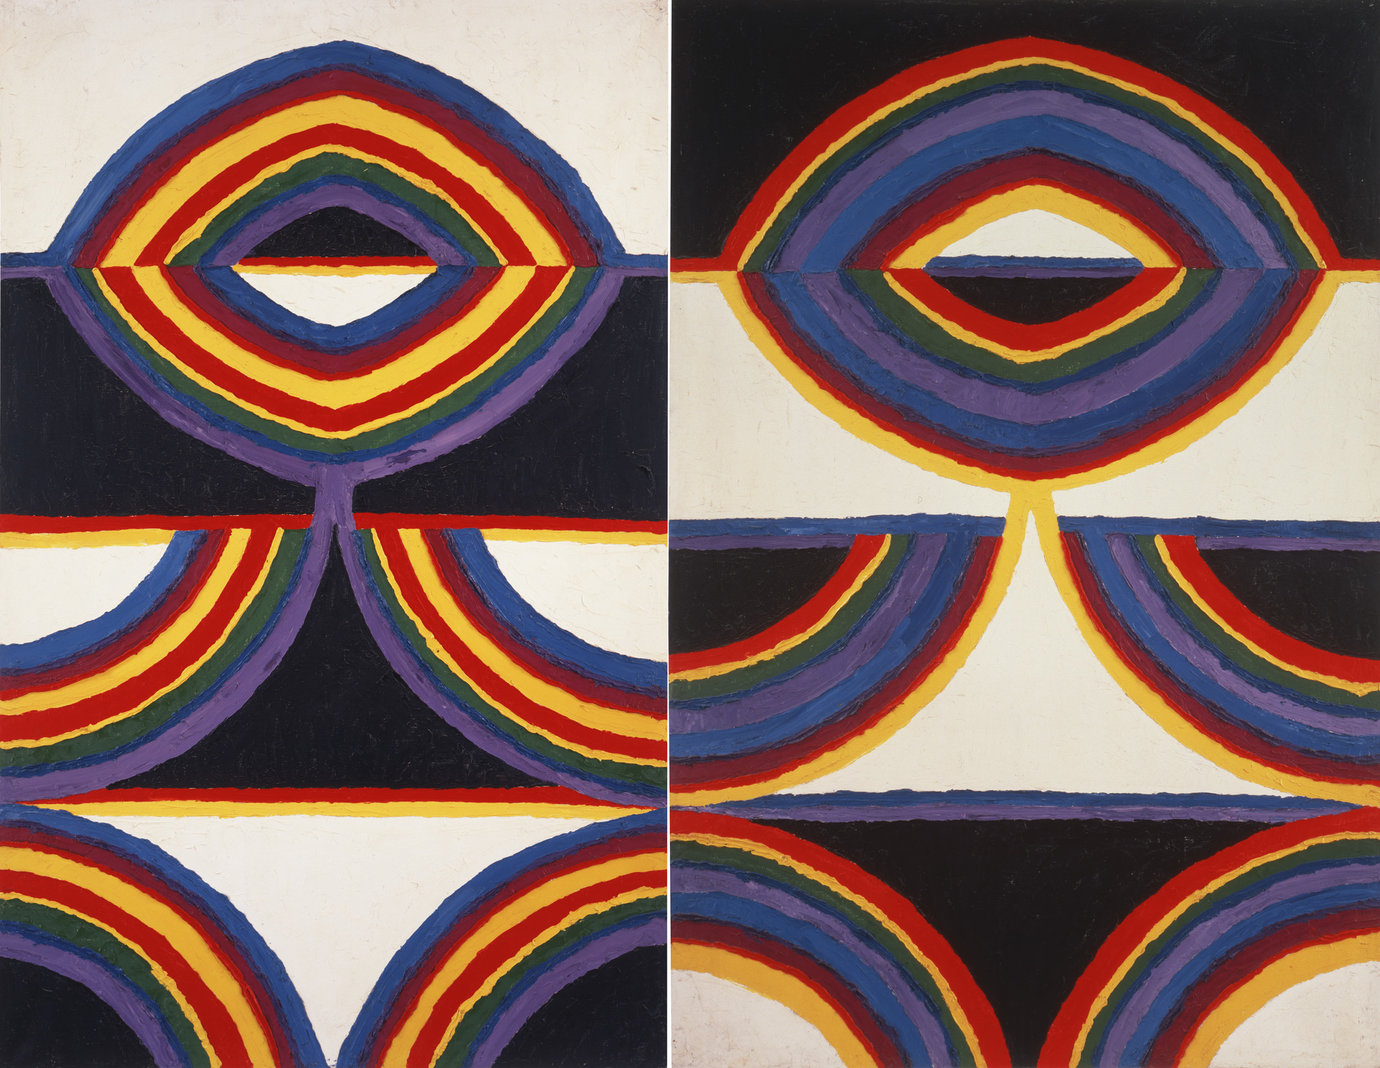 ", 1959. Oil on canvas, 74"" x 94-7/8"" (188 cm x 241 cm), overall 74"" x 48-7/8"" (188 cm x 124.1 cm), left panel74"" x 46"" (188 cm x 116.8 cm), right panel."